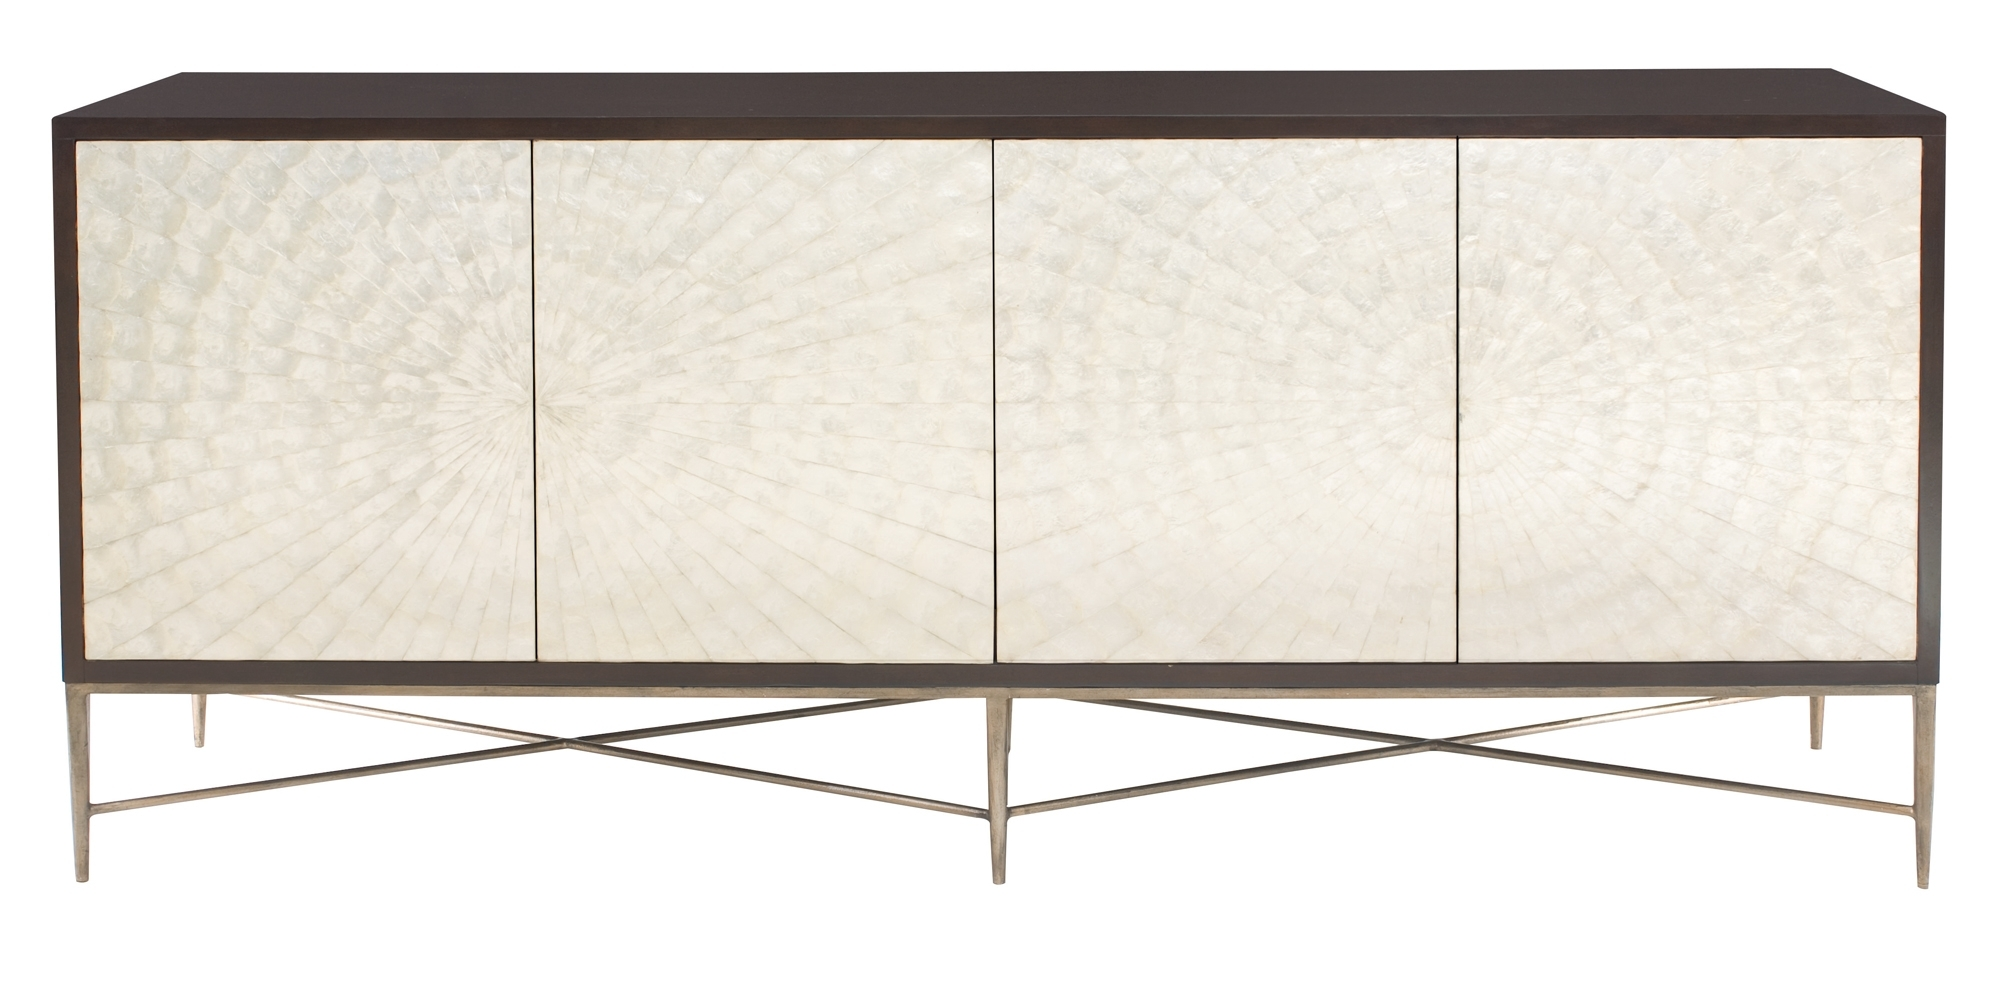 Cabinets, Consoles & Sofa Tables | Htgt Furniture Regarding Latest Gunmetal Perforated Brass Sideboards (#9 of 20)